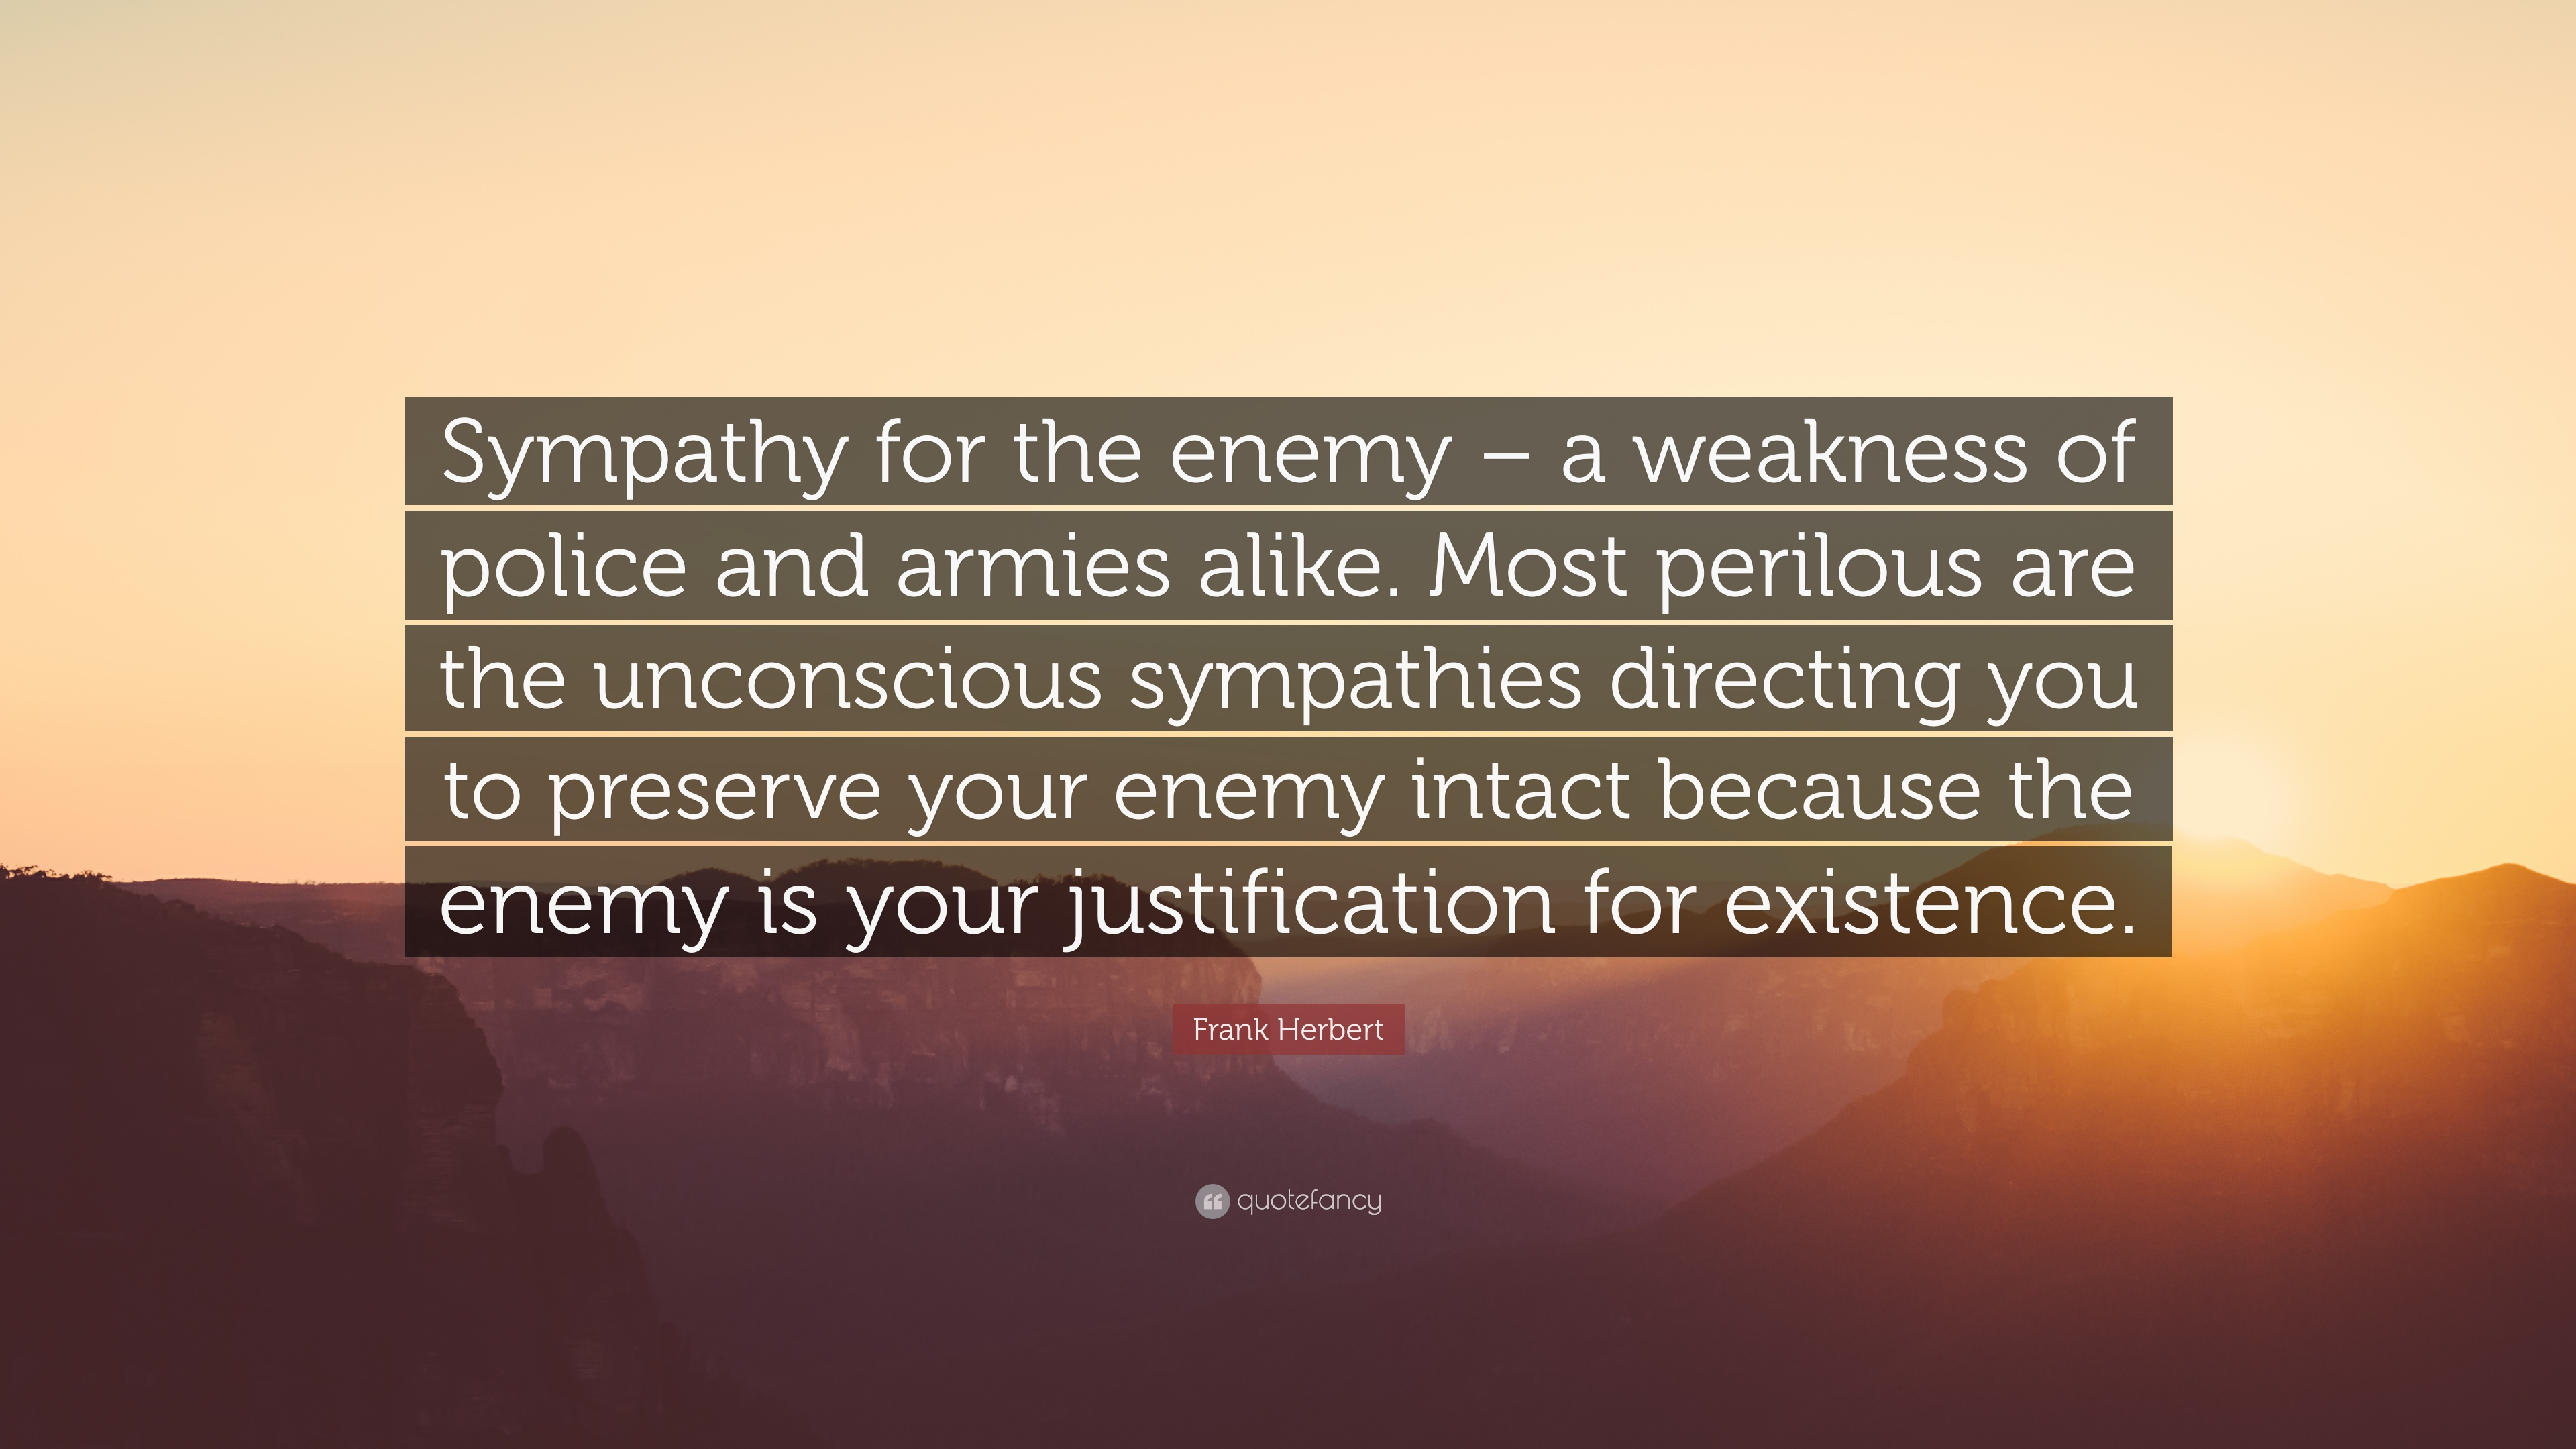 Frank herbert quote sympathy for the enemy a weakness of police frank herbert quote sympathy for the enemy a weakness of police and armies altavistaventures Choice Image